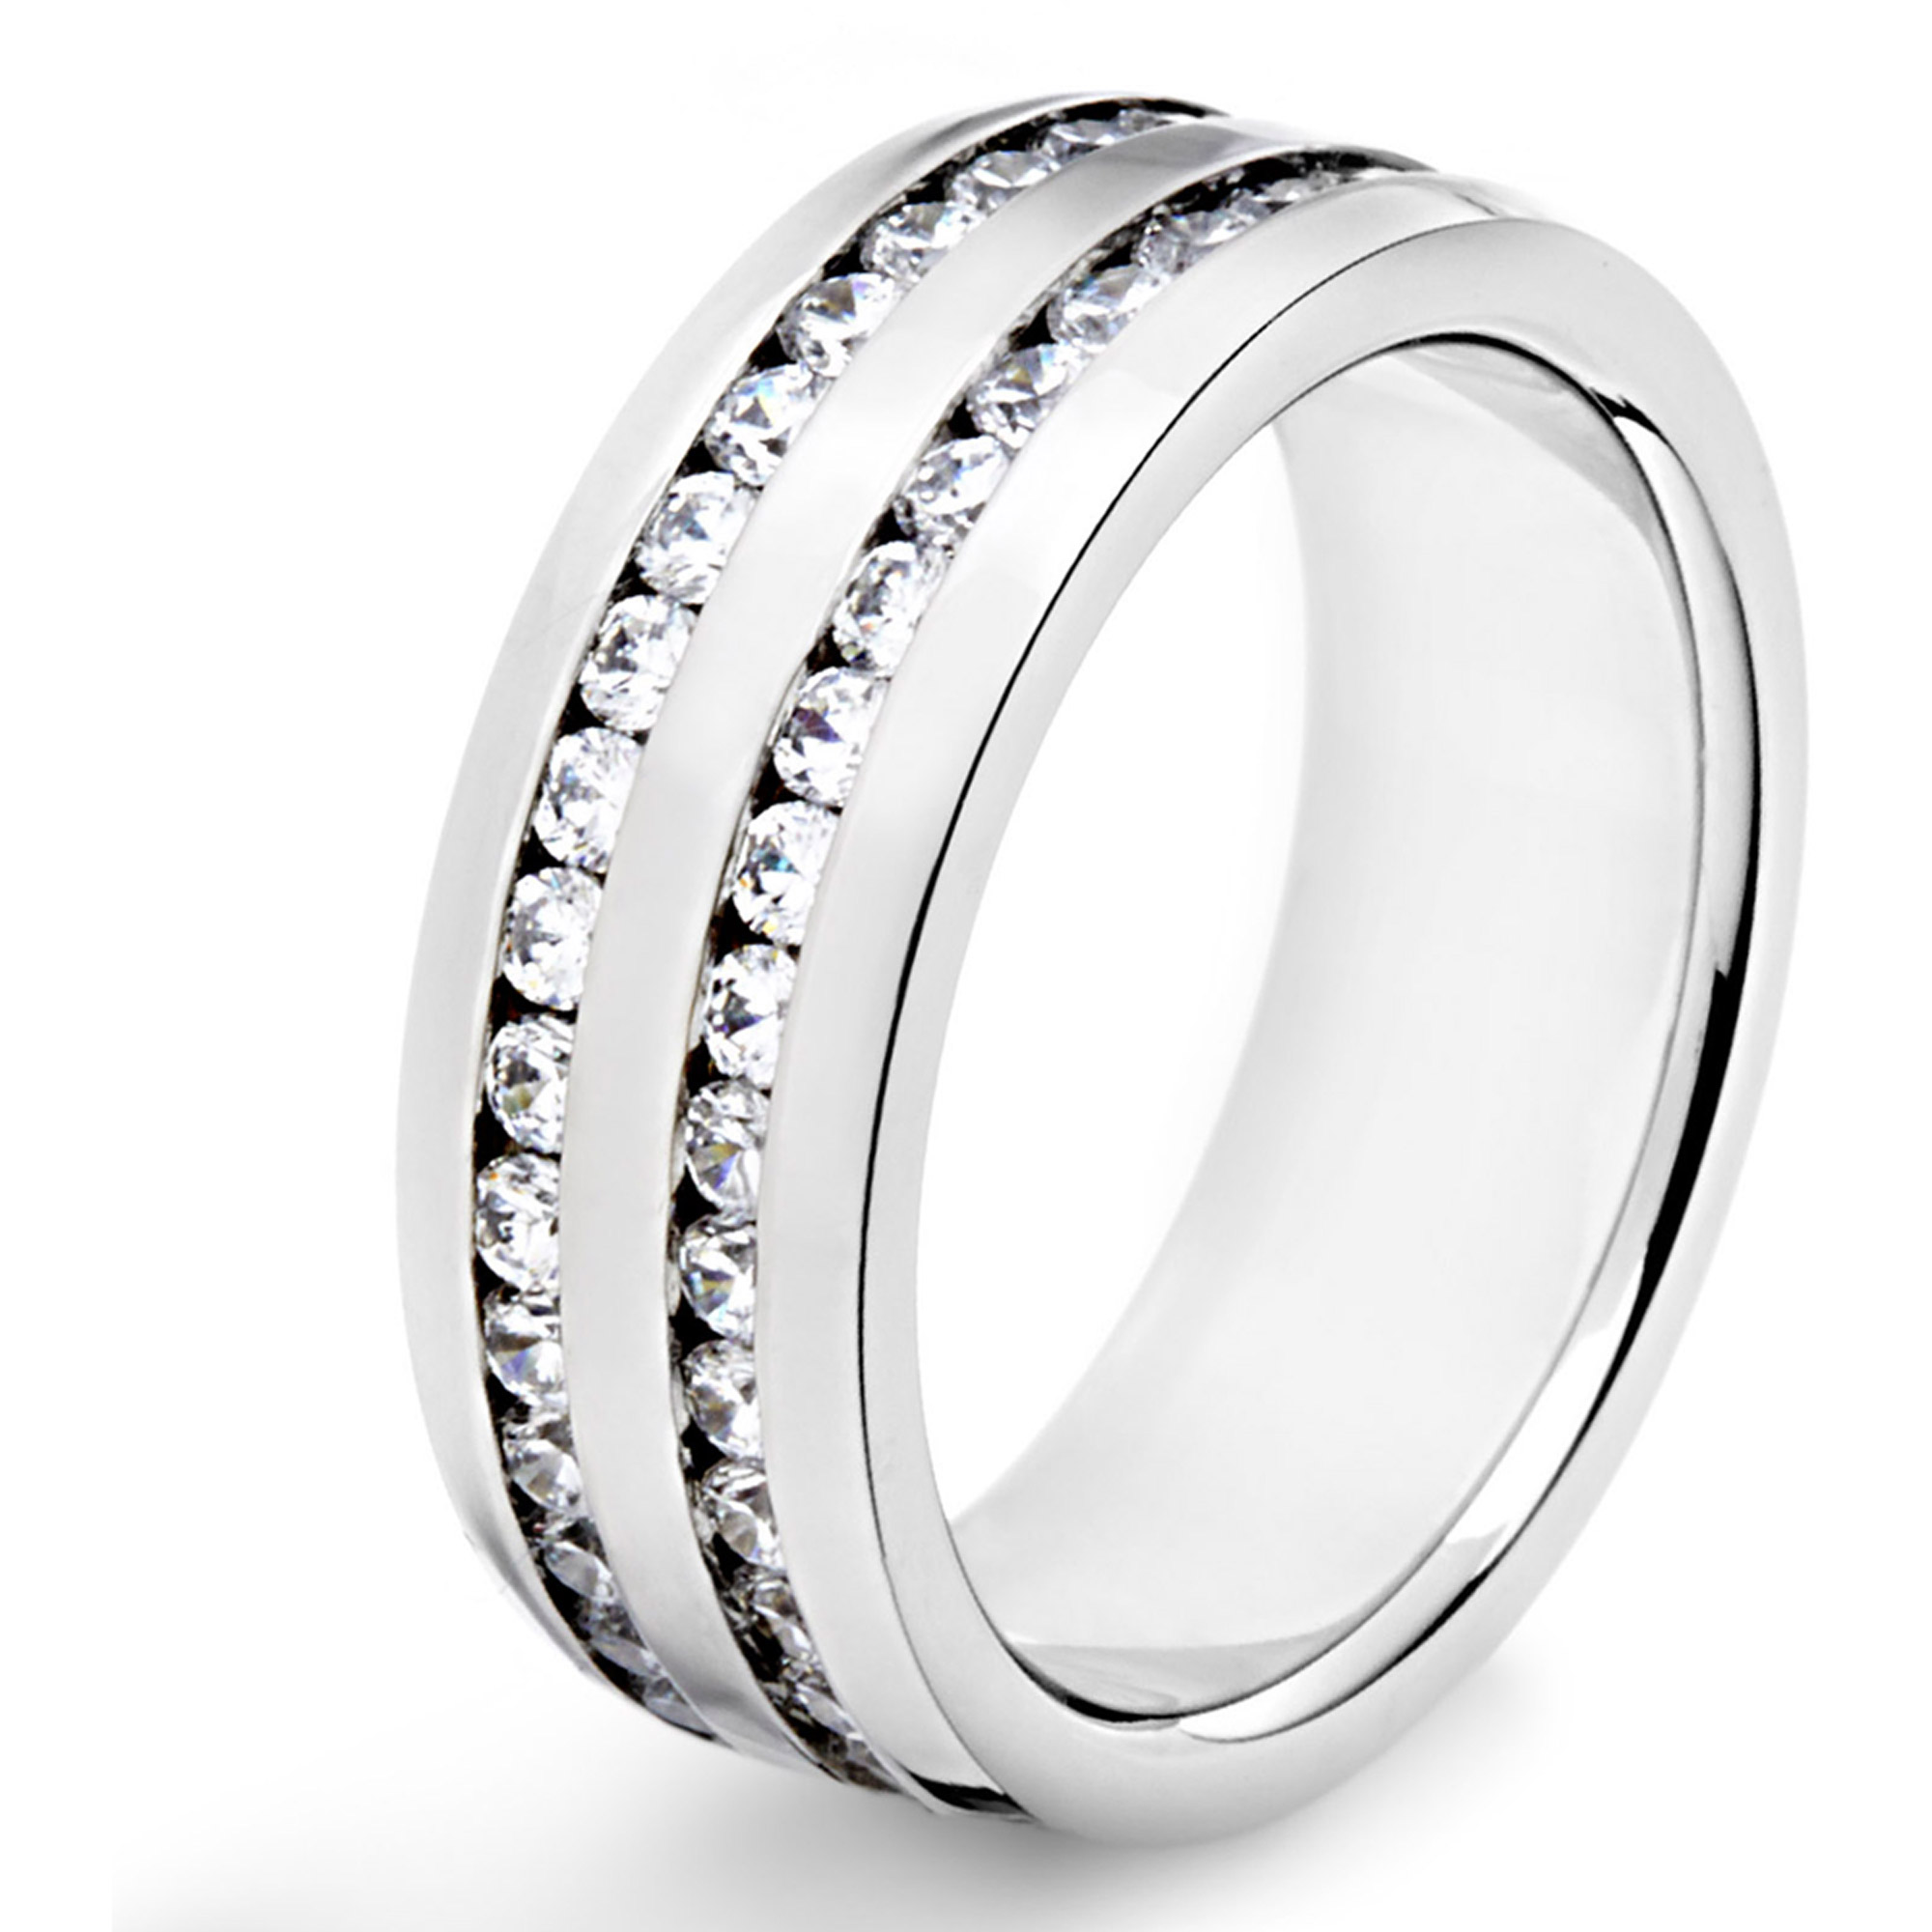 Crucible Stainless Steel CZ Ring